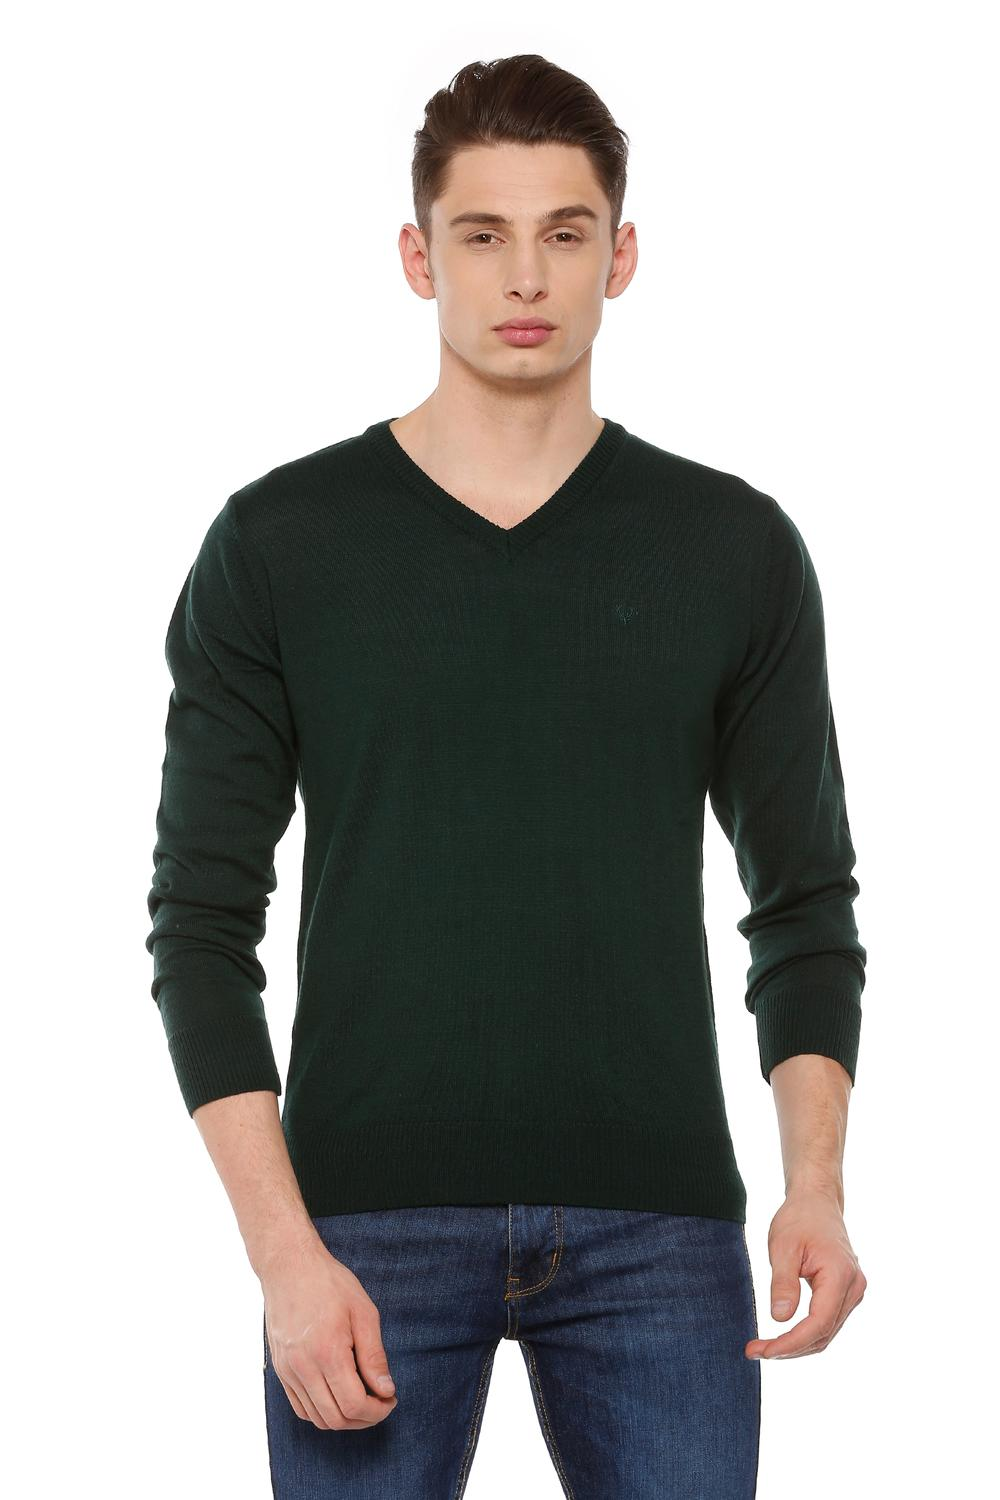 Allen Solly Sweaters, Allen Solly Green Sweater for Men at Allensolly.com